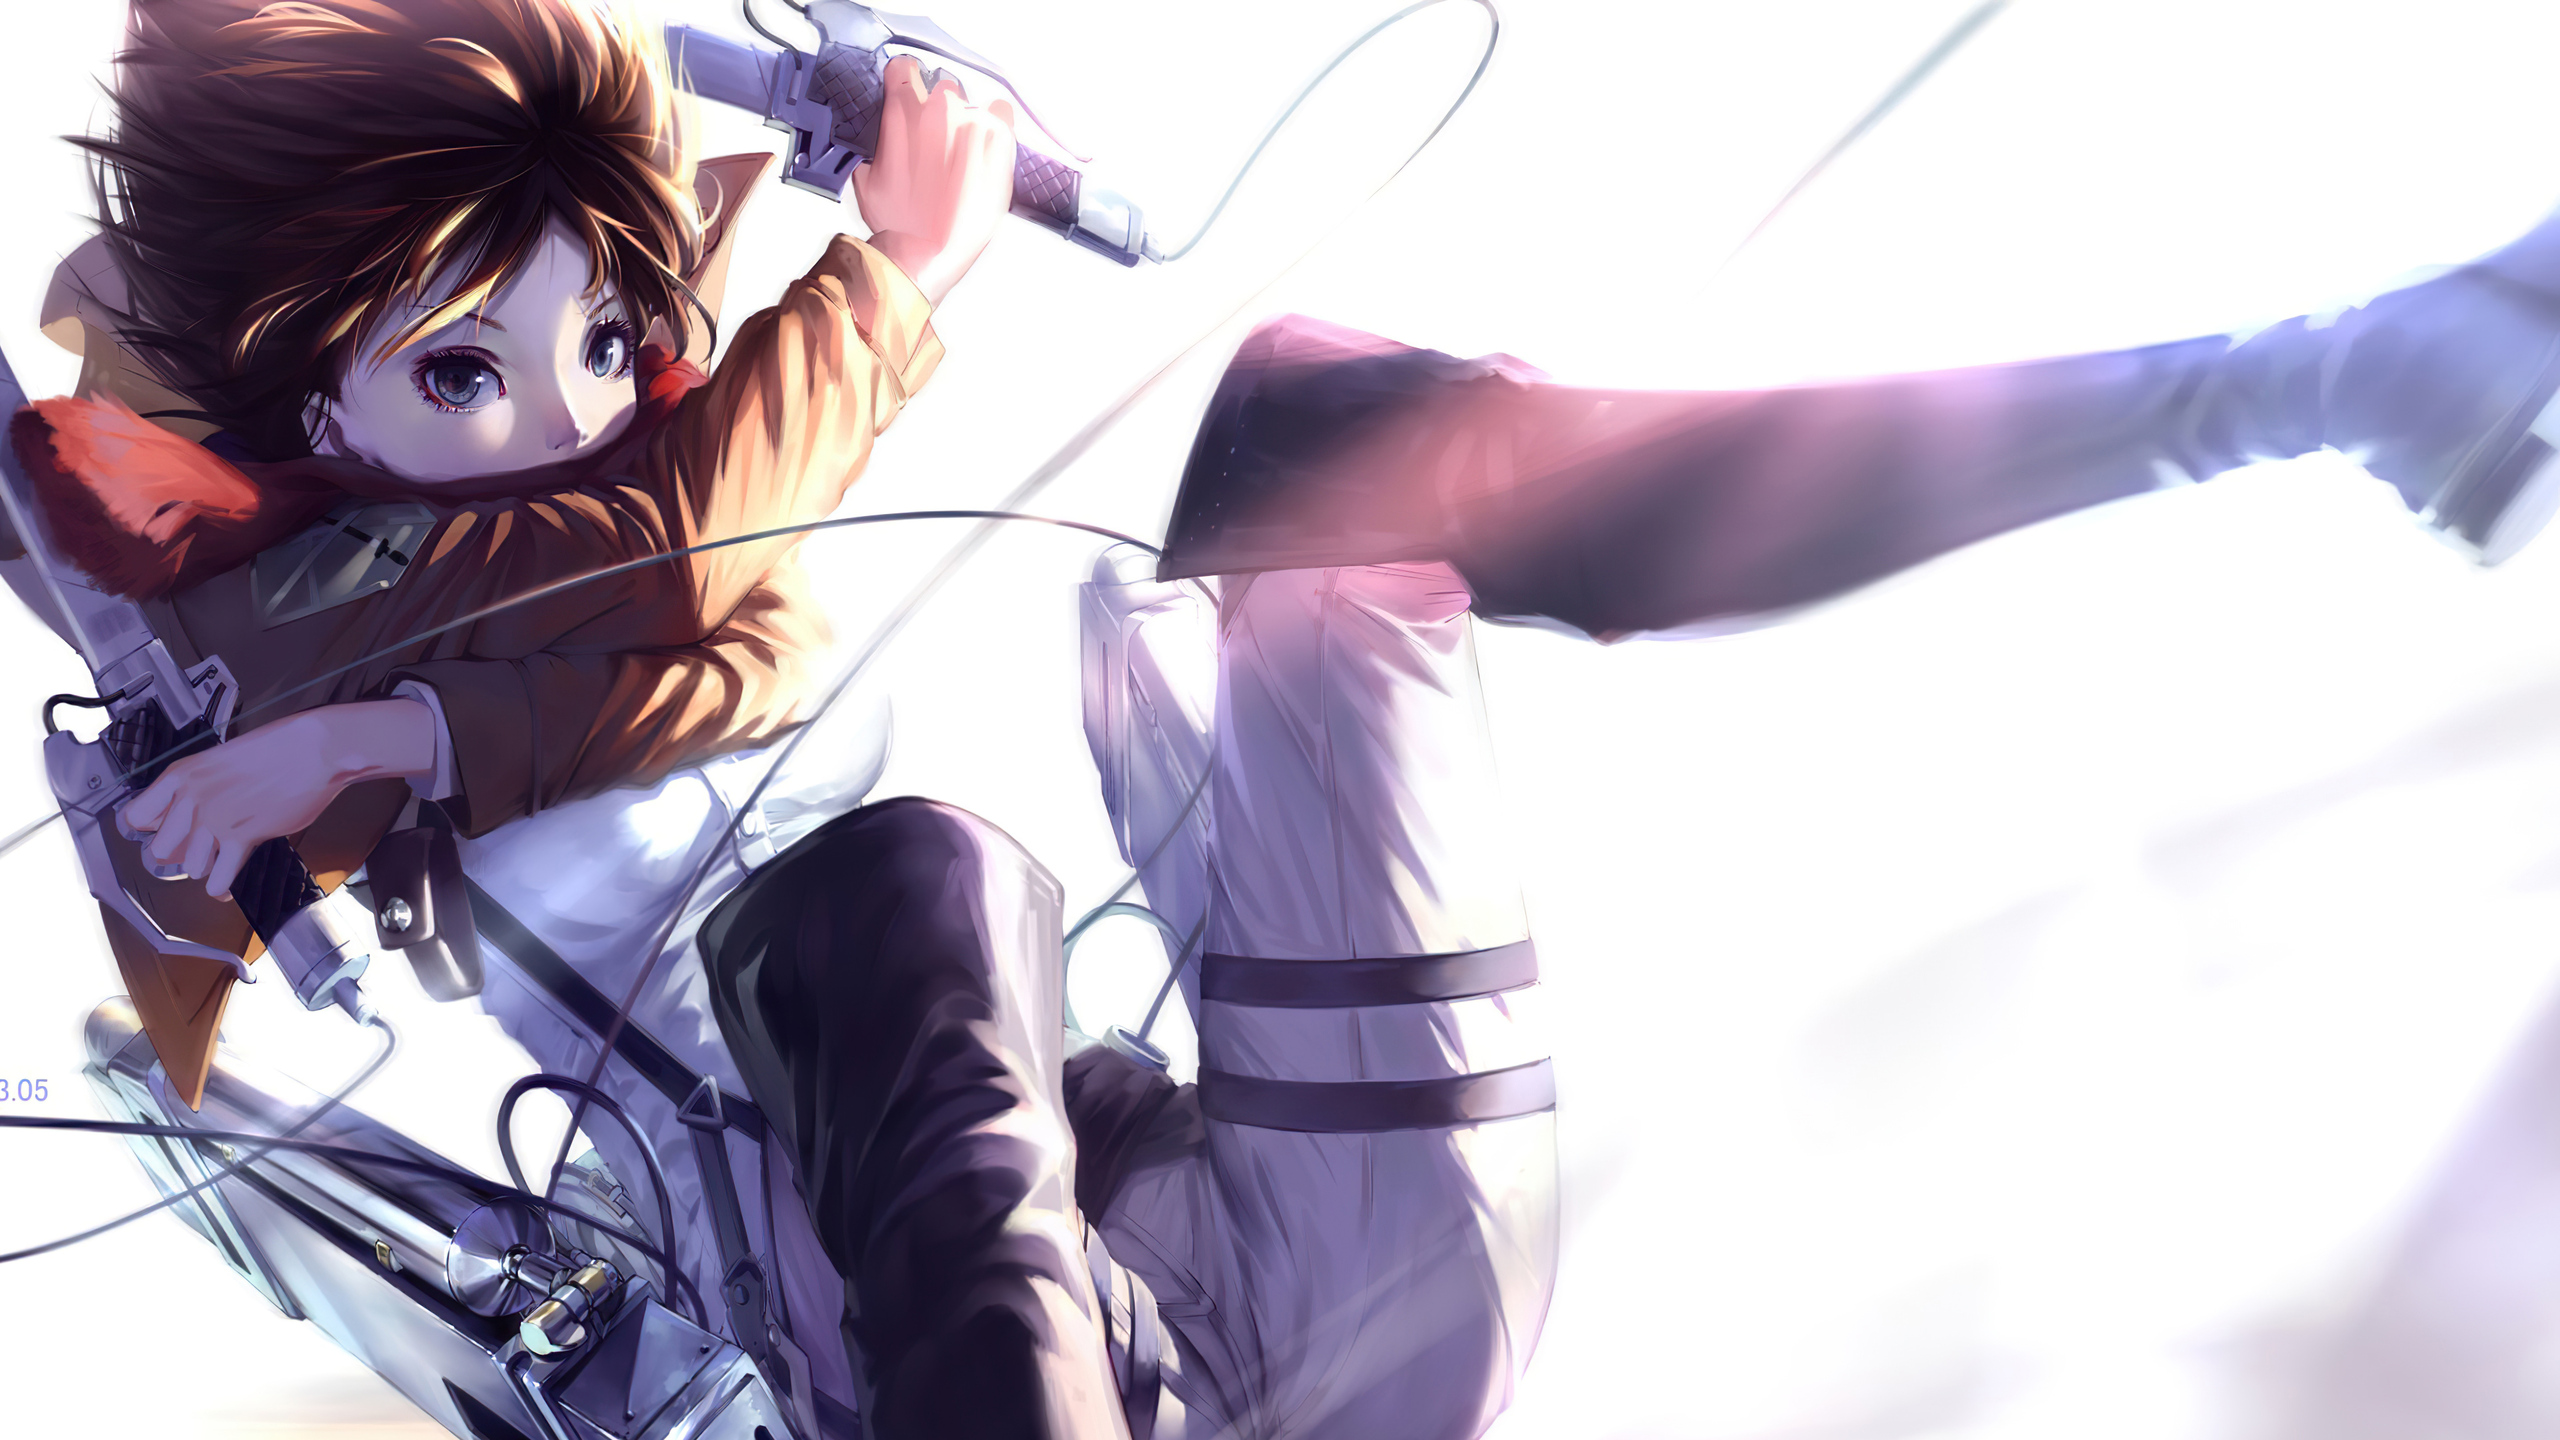 2560x1440 Attack On Titans Shingeki No Kyojin 1440p Resolution Hd 4k Wallpapers Images Backgrounds Photos And Pictures